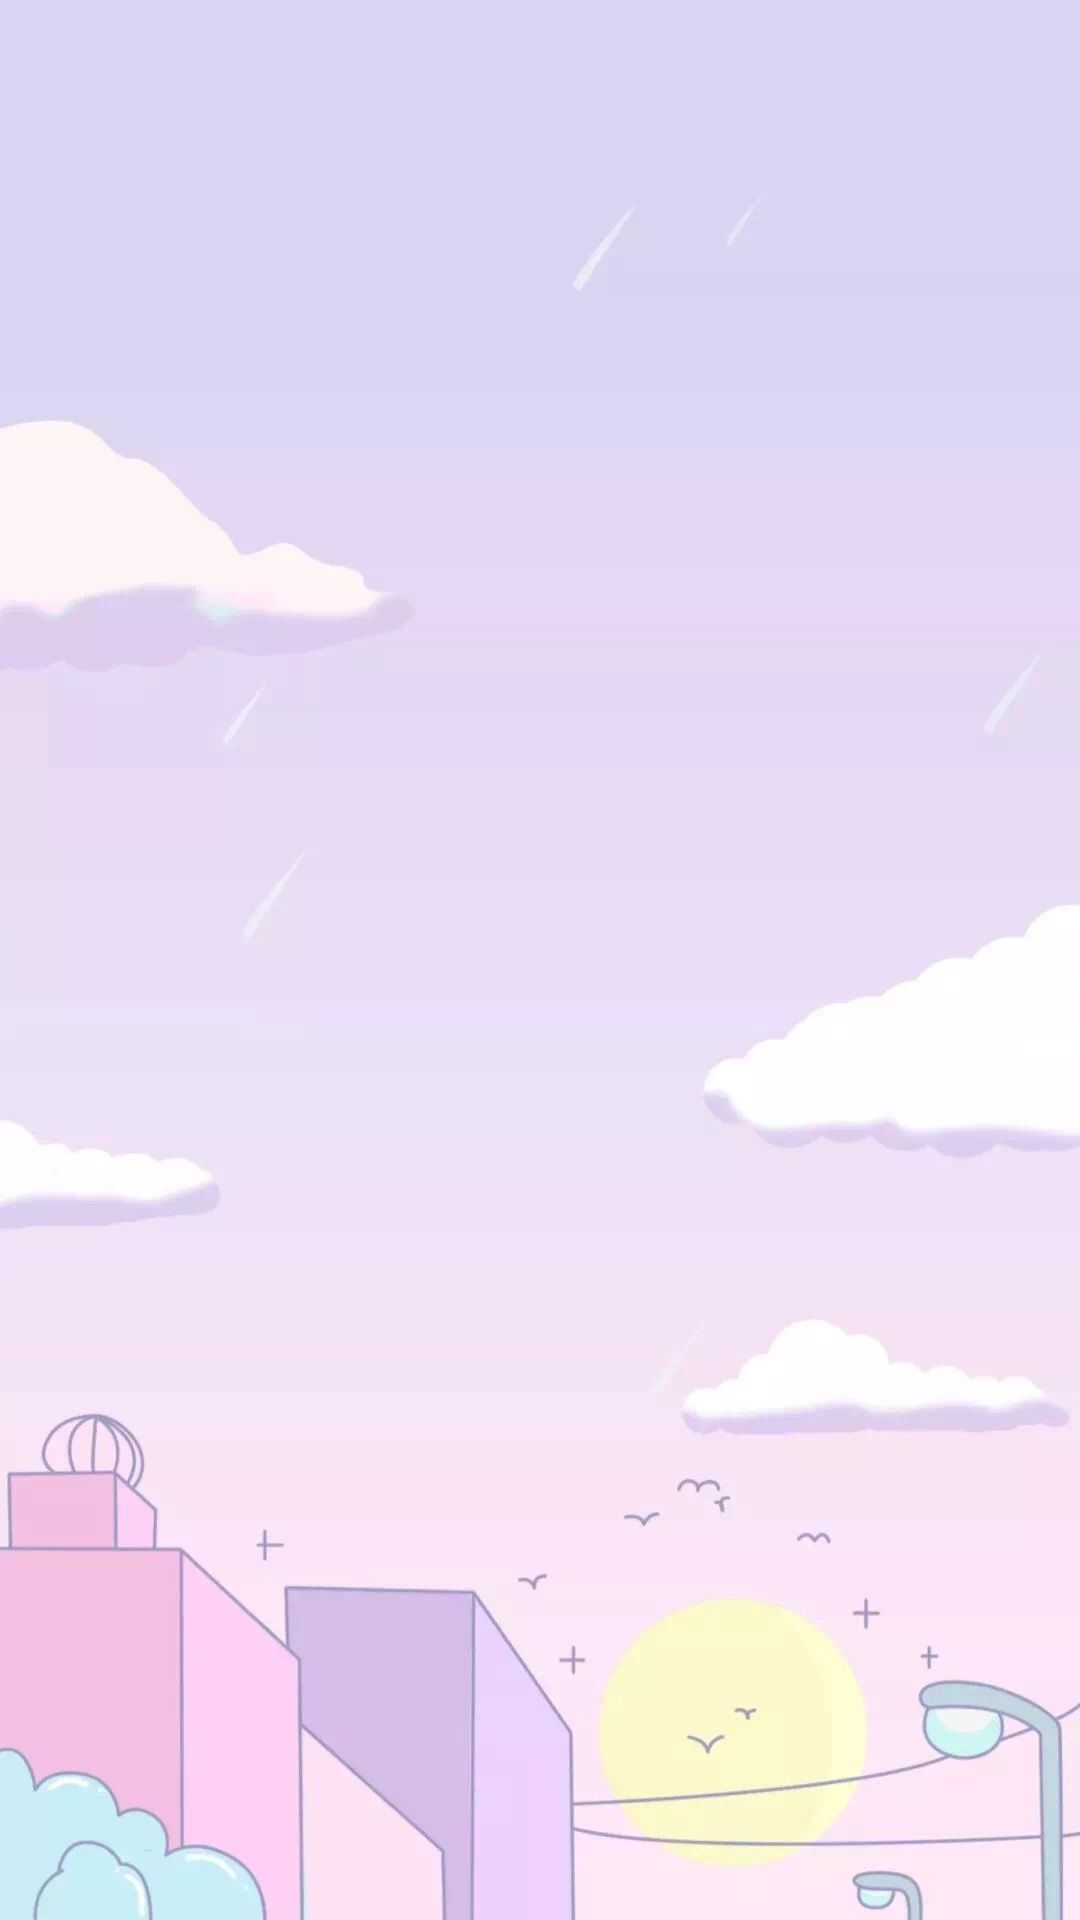 This is shi's blog on kawaii culture and all things adorable, cute, girly, sweet and, of course, pink from all over the world and the interwebs. Kawaii Pastel Aesthetic Wallpapers - Top Free Kawaii ...